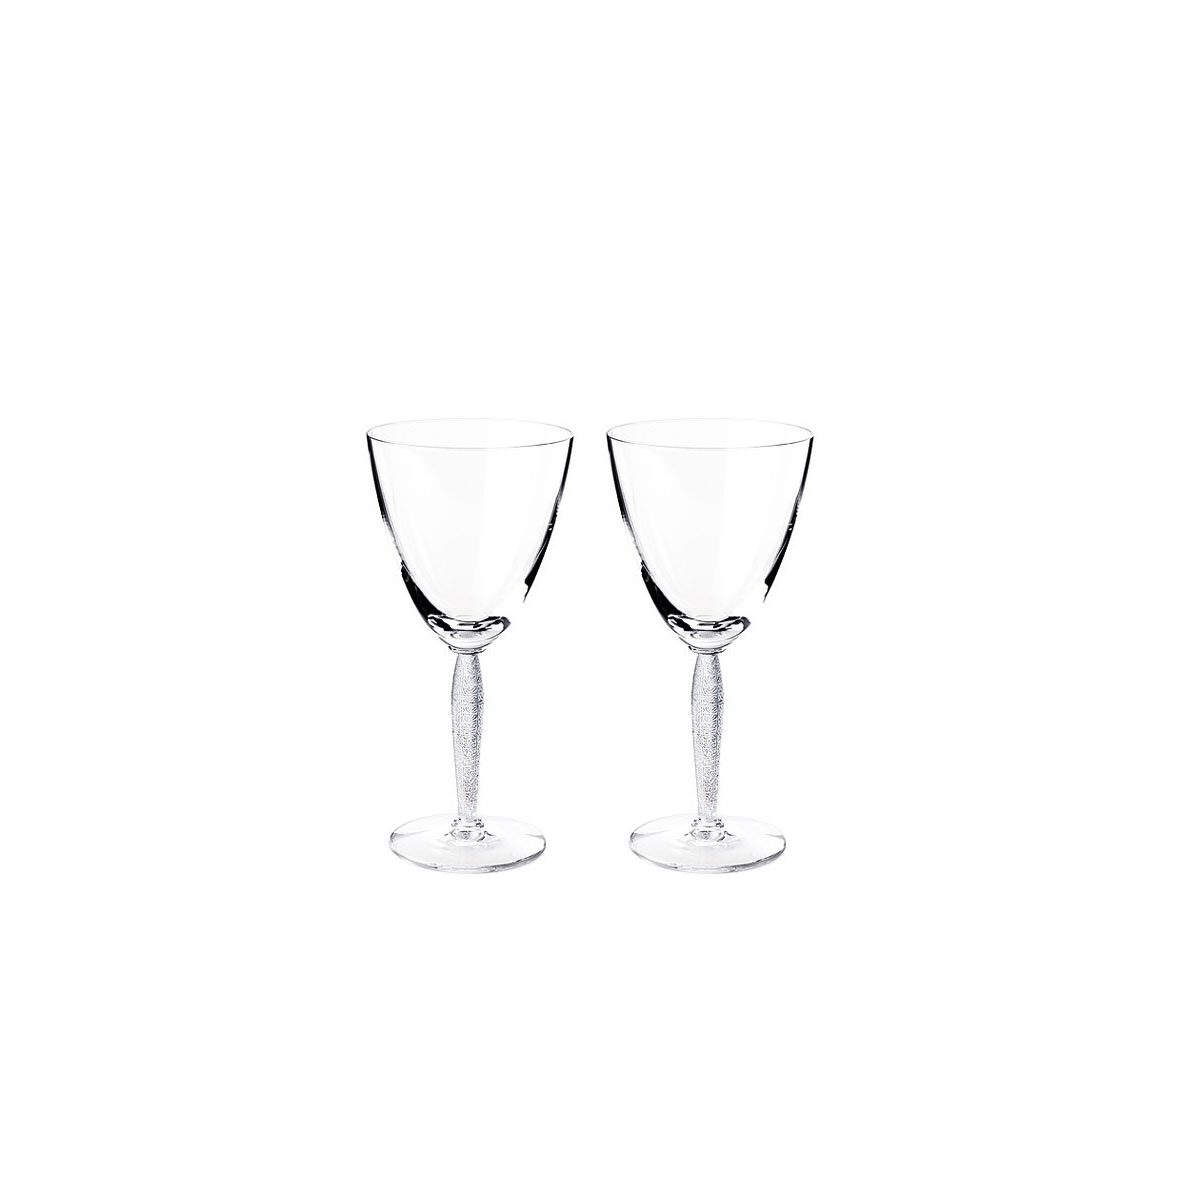 Lalique Crystal, Louvre Water Crystal Glasses, Pair